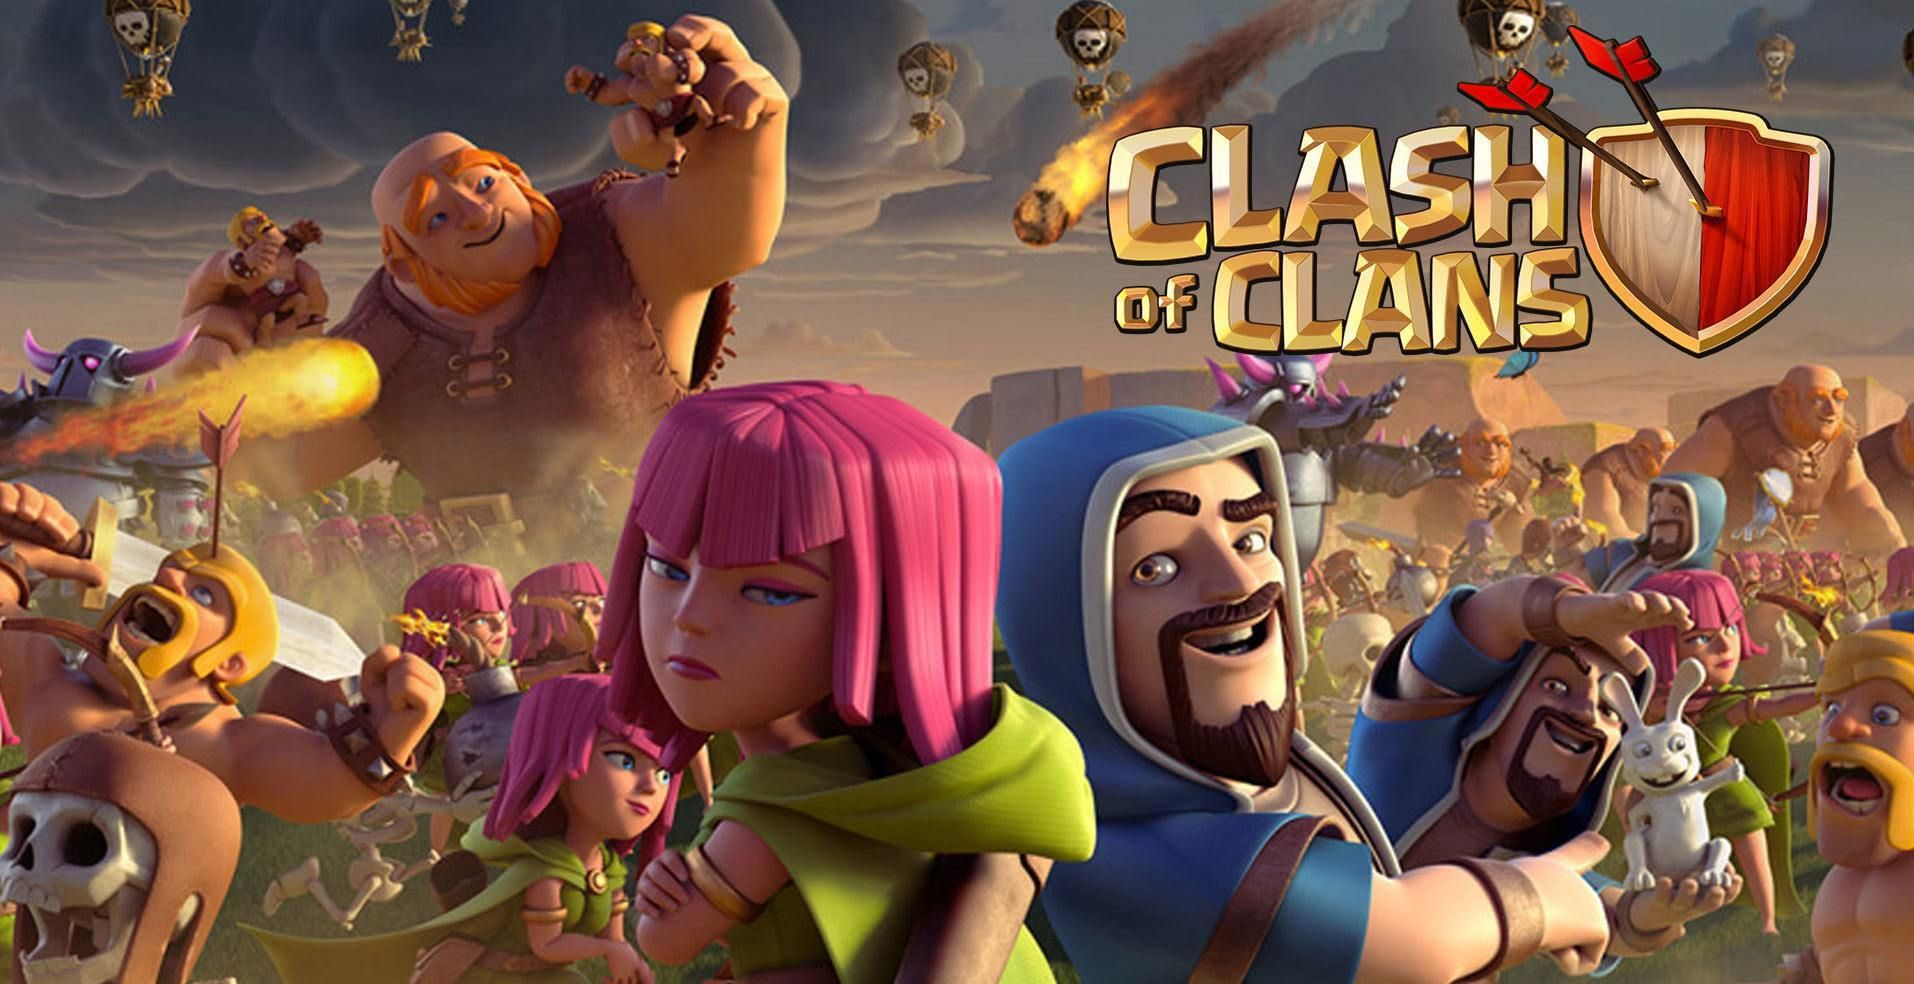 Top 100 Cool Clash of Clans Player Names | Clash of clans